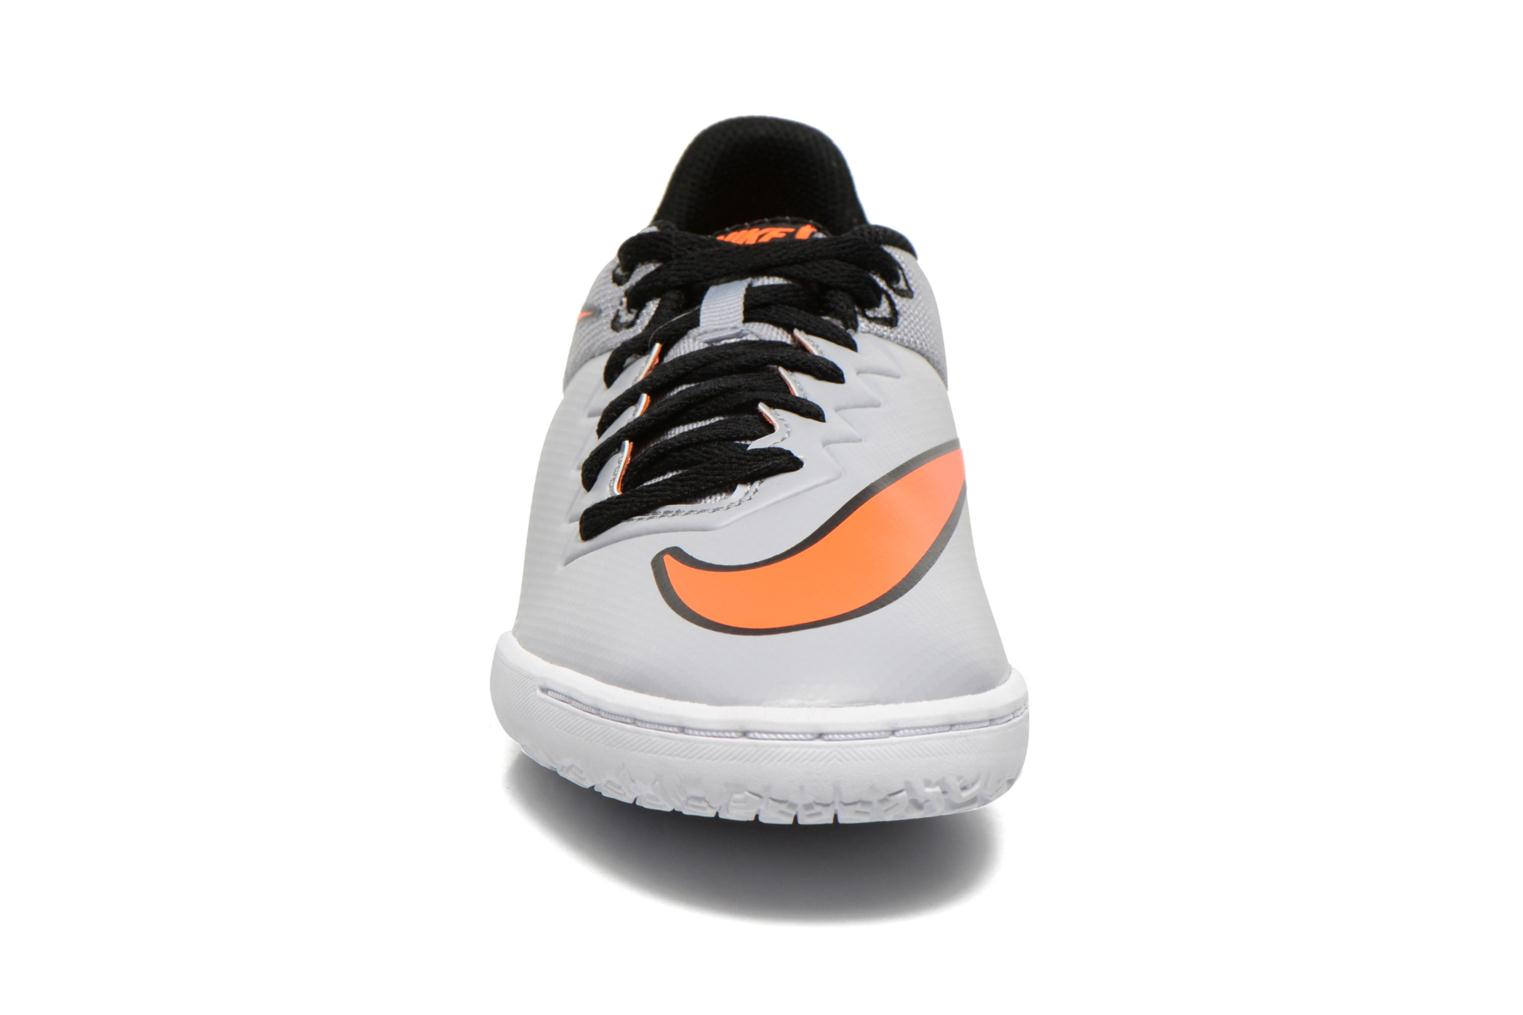 Hypervenomx Pro Ic Wolf Grey/Ttl Orange-White-Blk